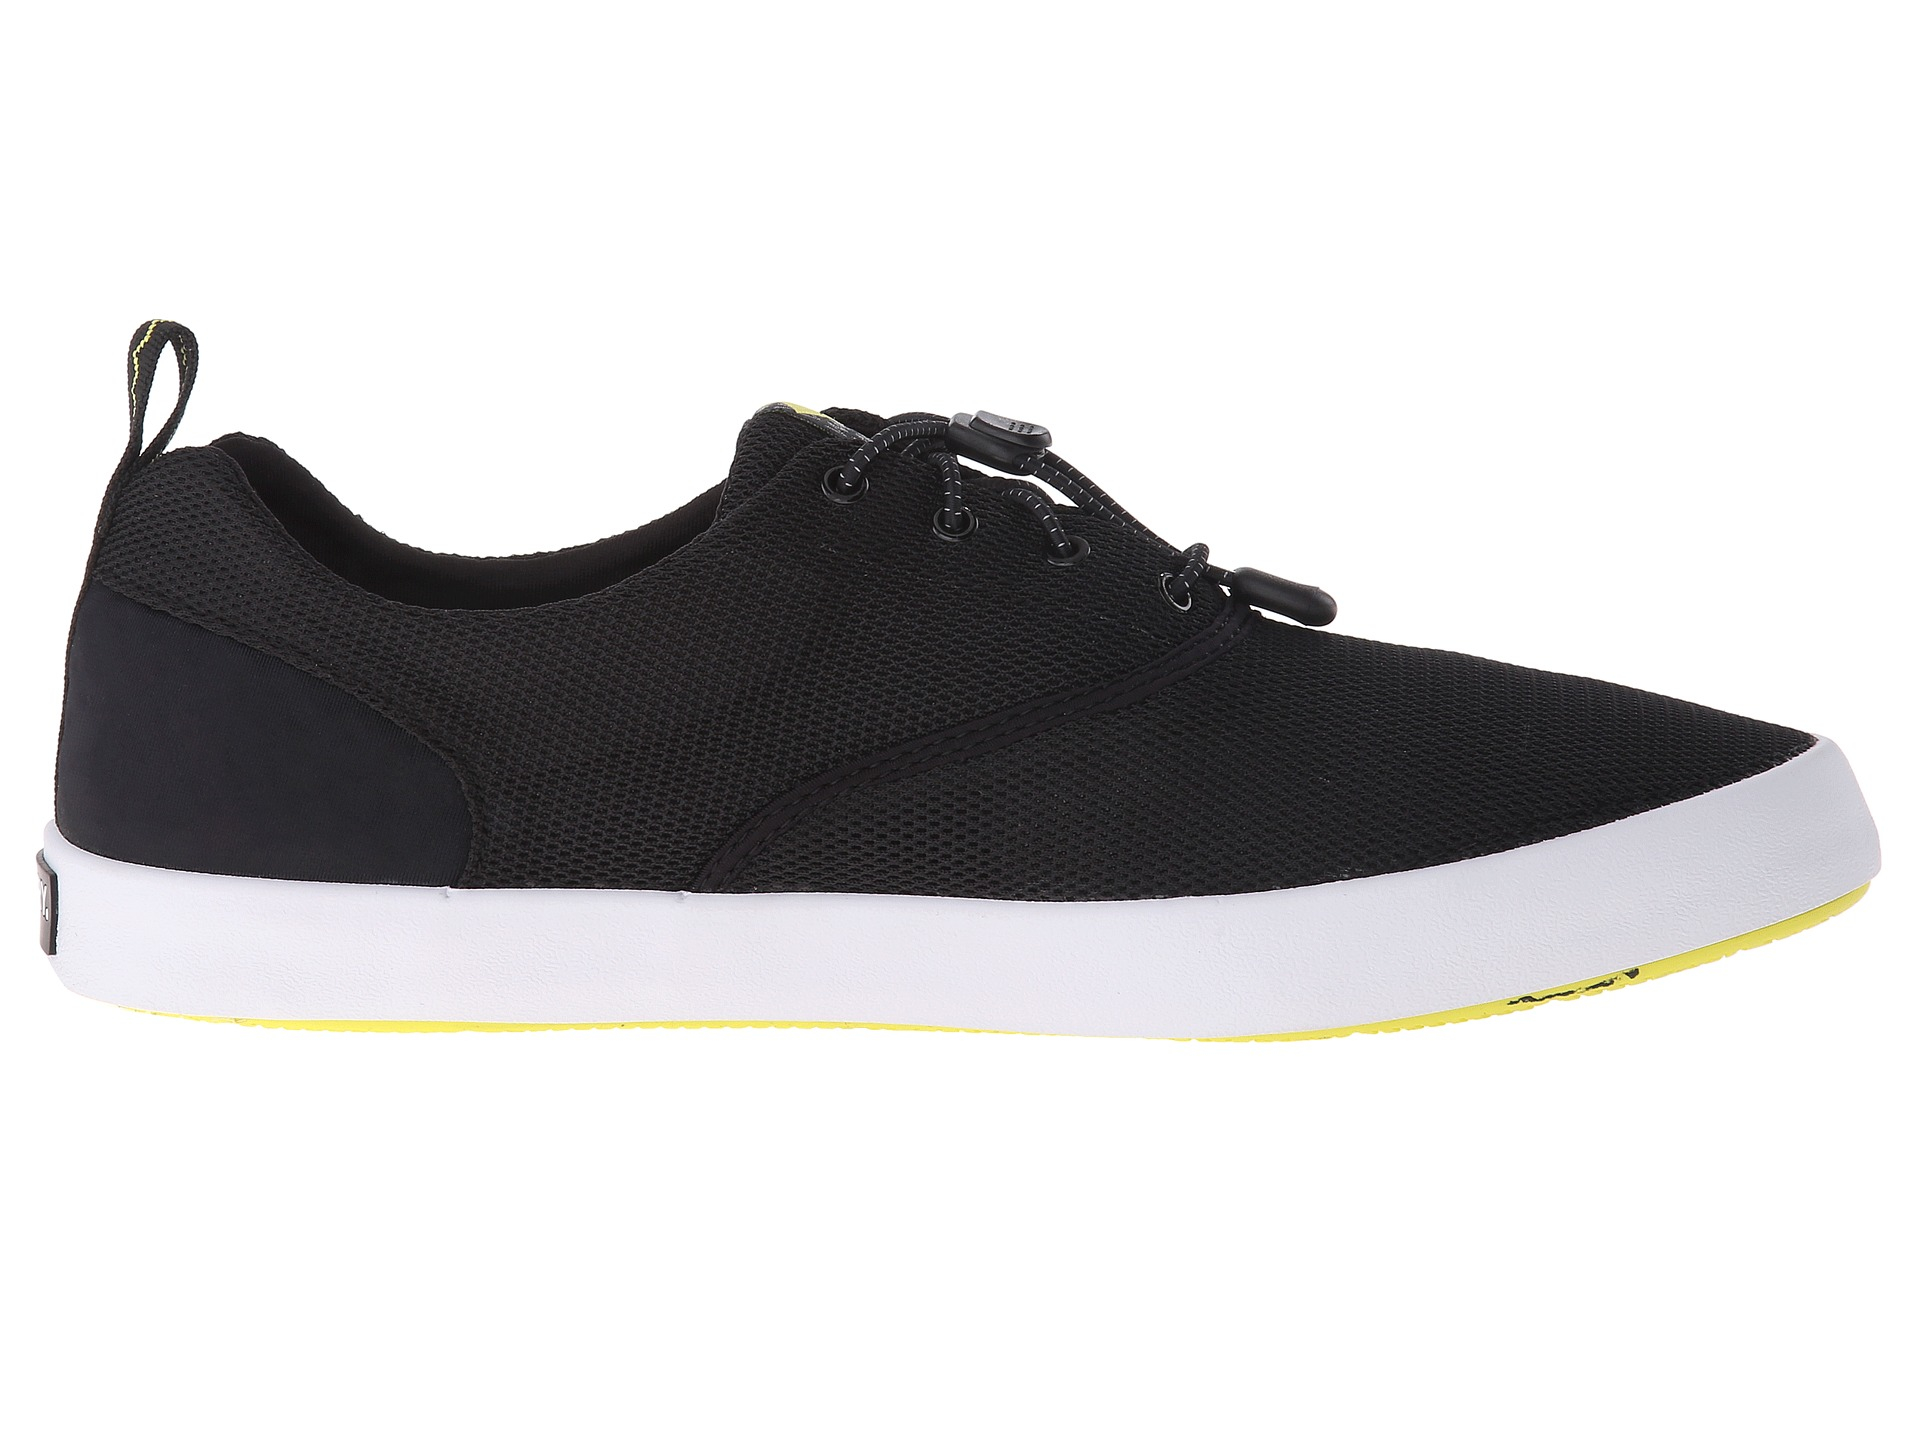 Sperry Top-Sider Lace Flex Deck Cvo in